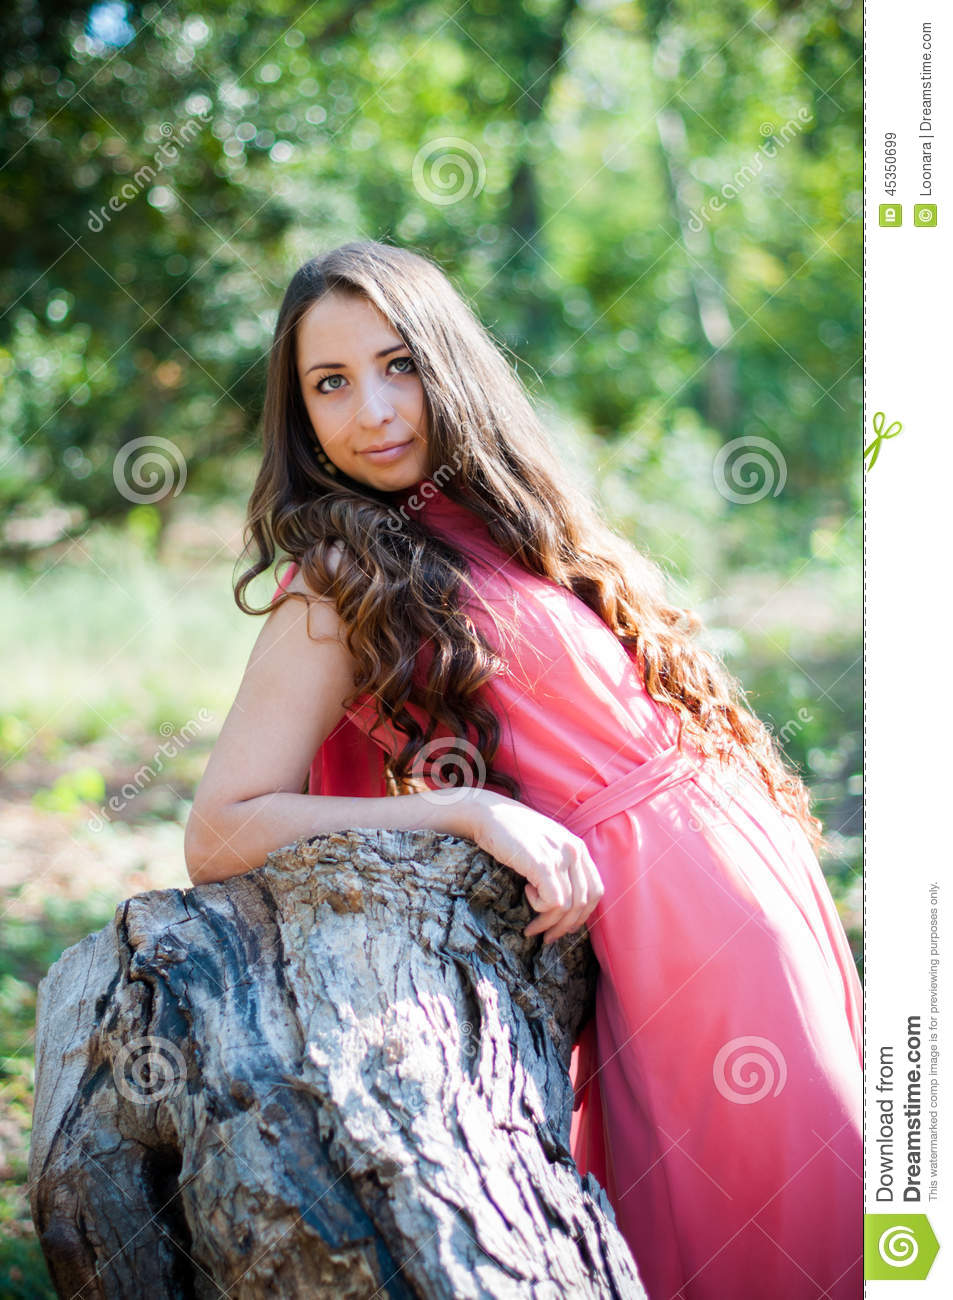 Young girl in a park